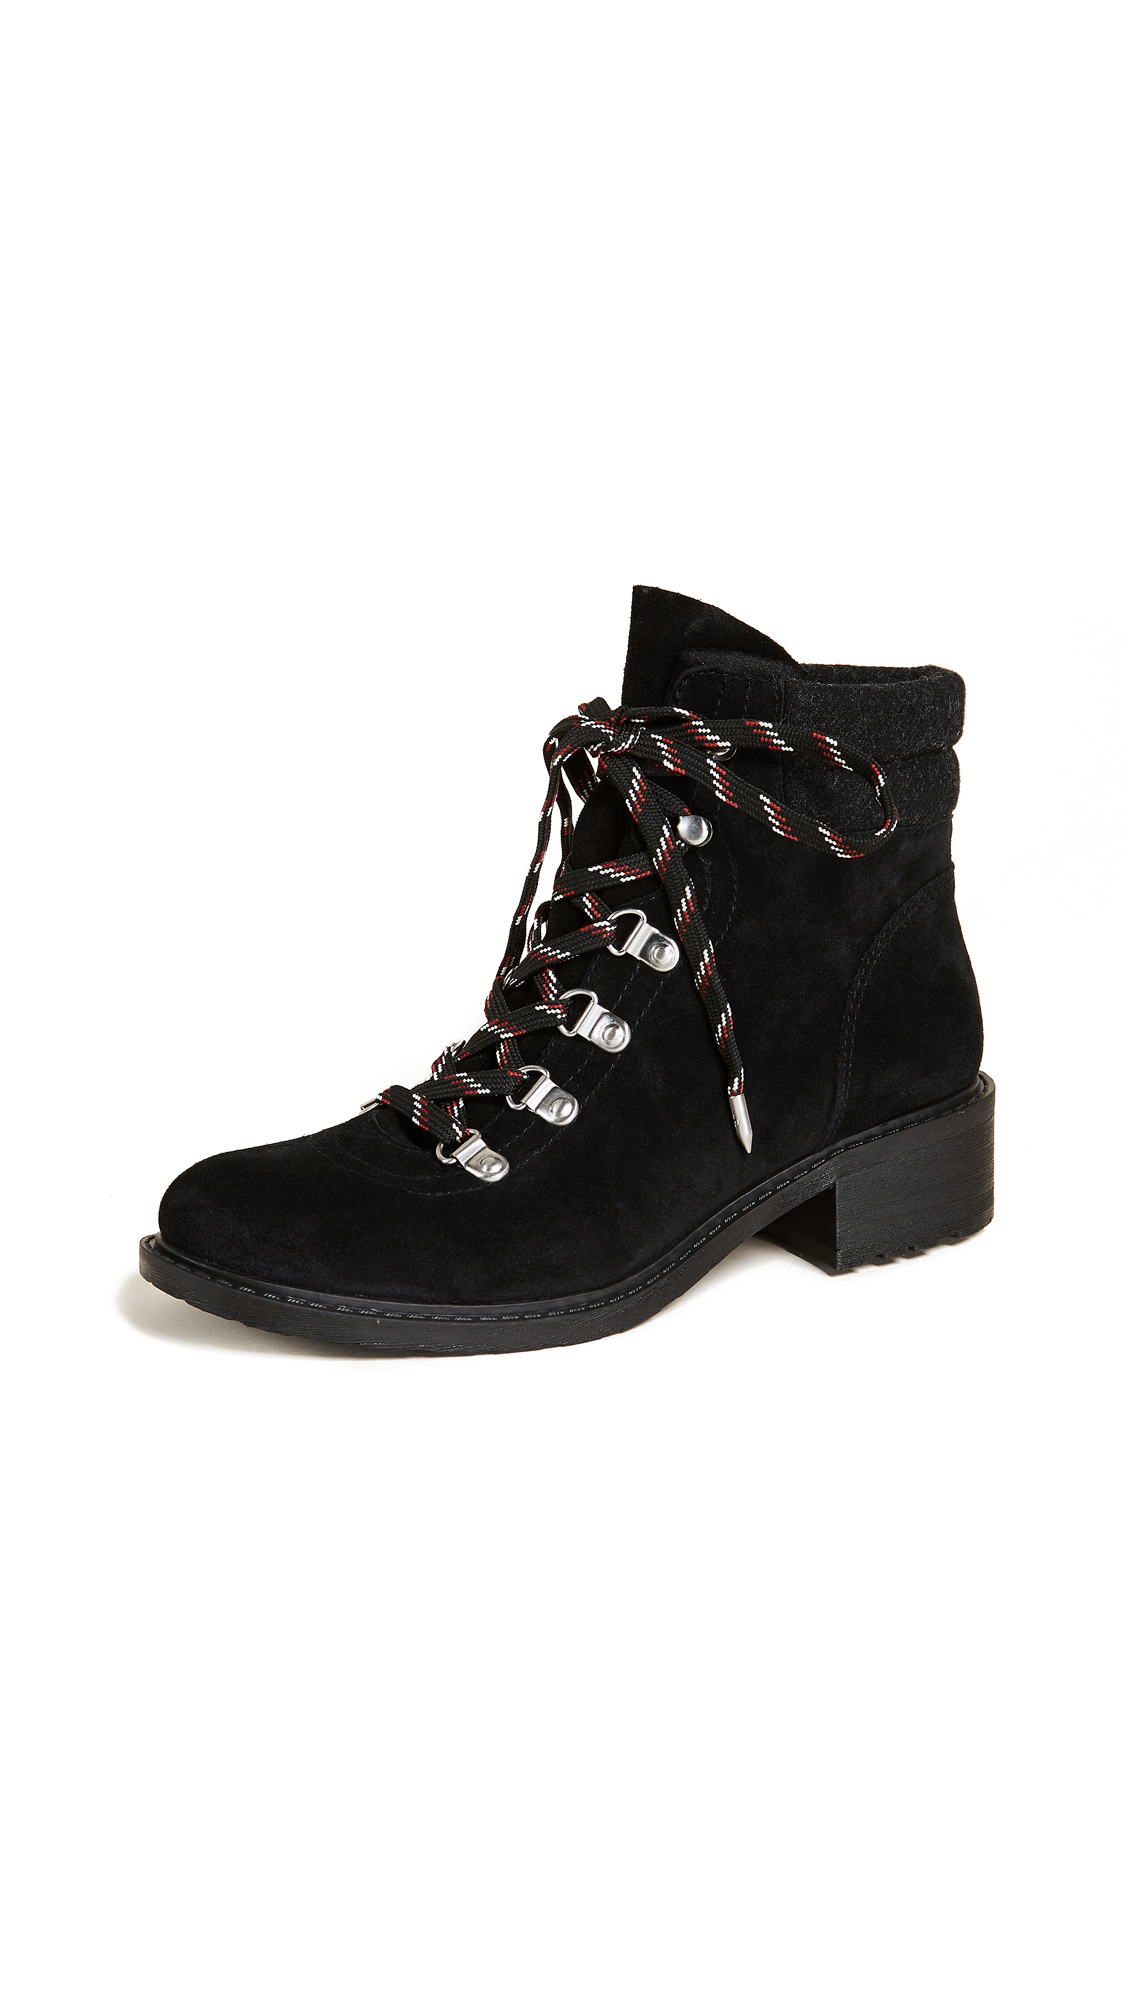 Sam Edelman Darrah Hiker Boots - Black/Phantom Grey